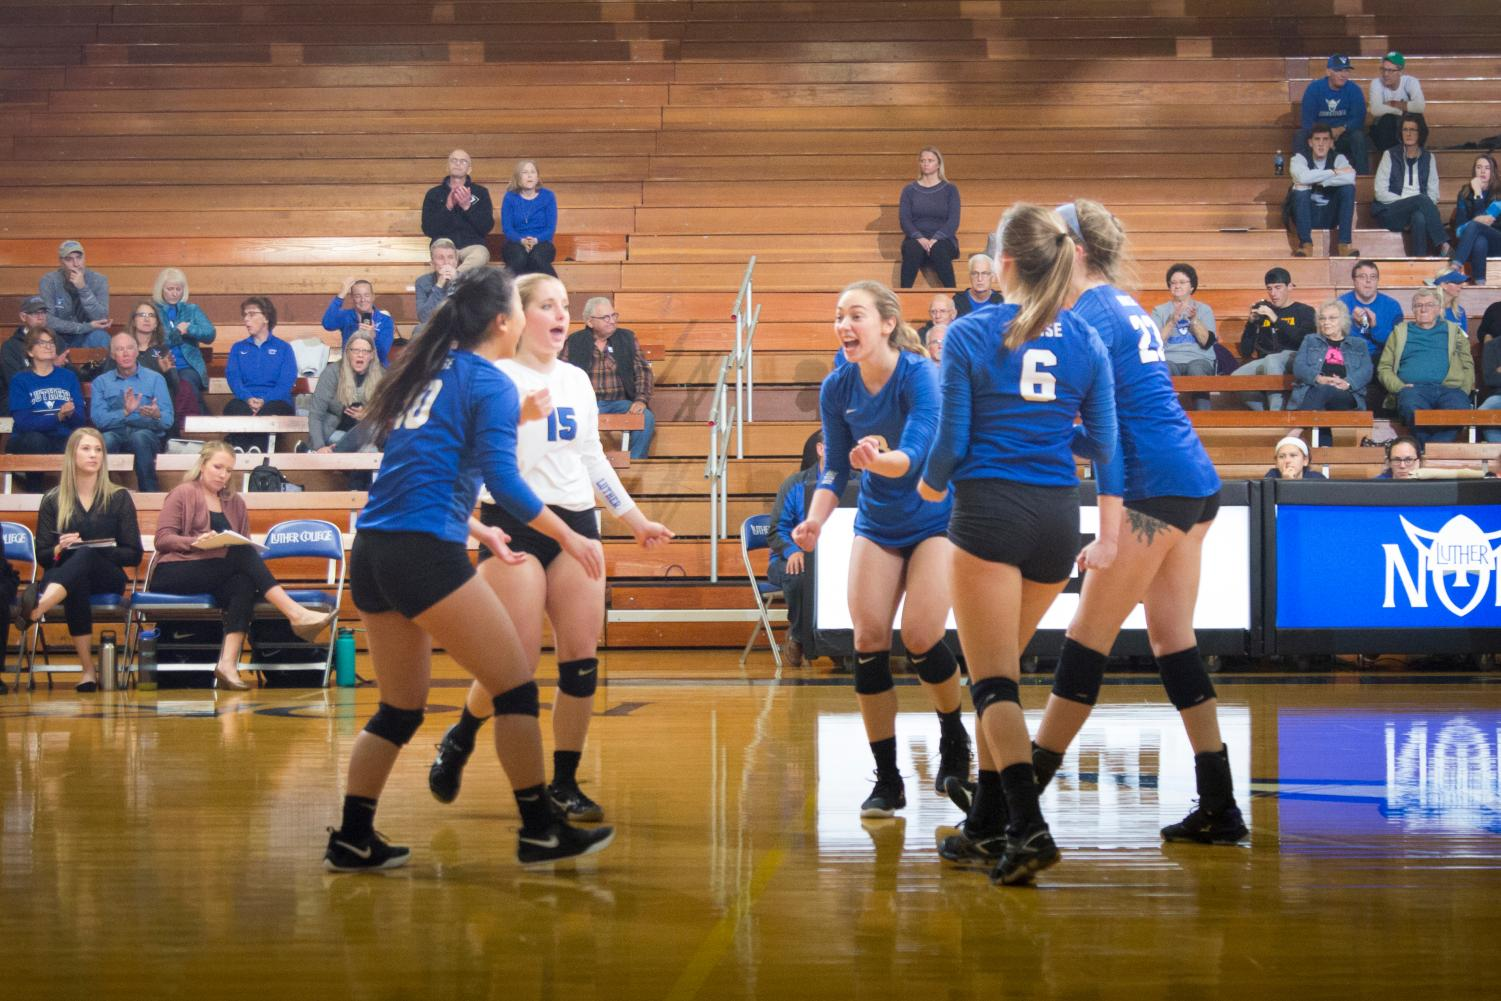 Grace Meyers ('22), Natalie Cote ('19), Anna Larson ('19), Katie Shabatura ('19), and Sam Sixta ('20) celebrate after a point against Loras College on Oct. 30.